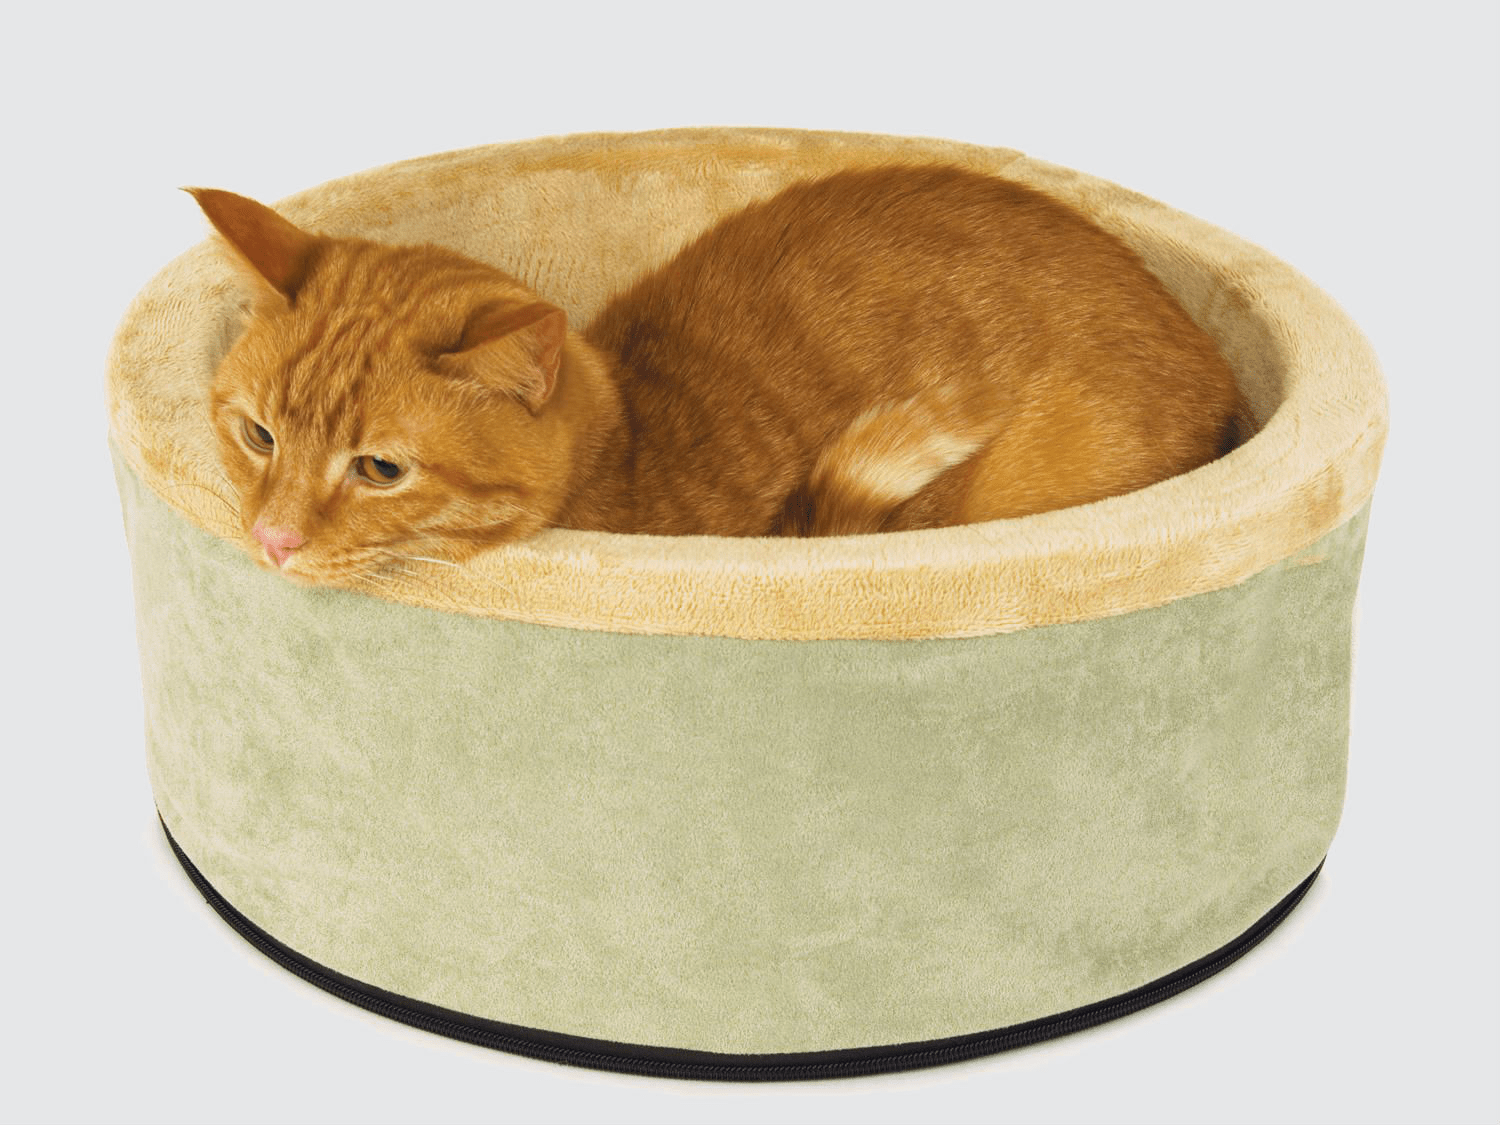 Best Cat Beds In 2019 Petfusion Aspen K H Armarkat And More Business Insider